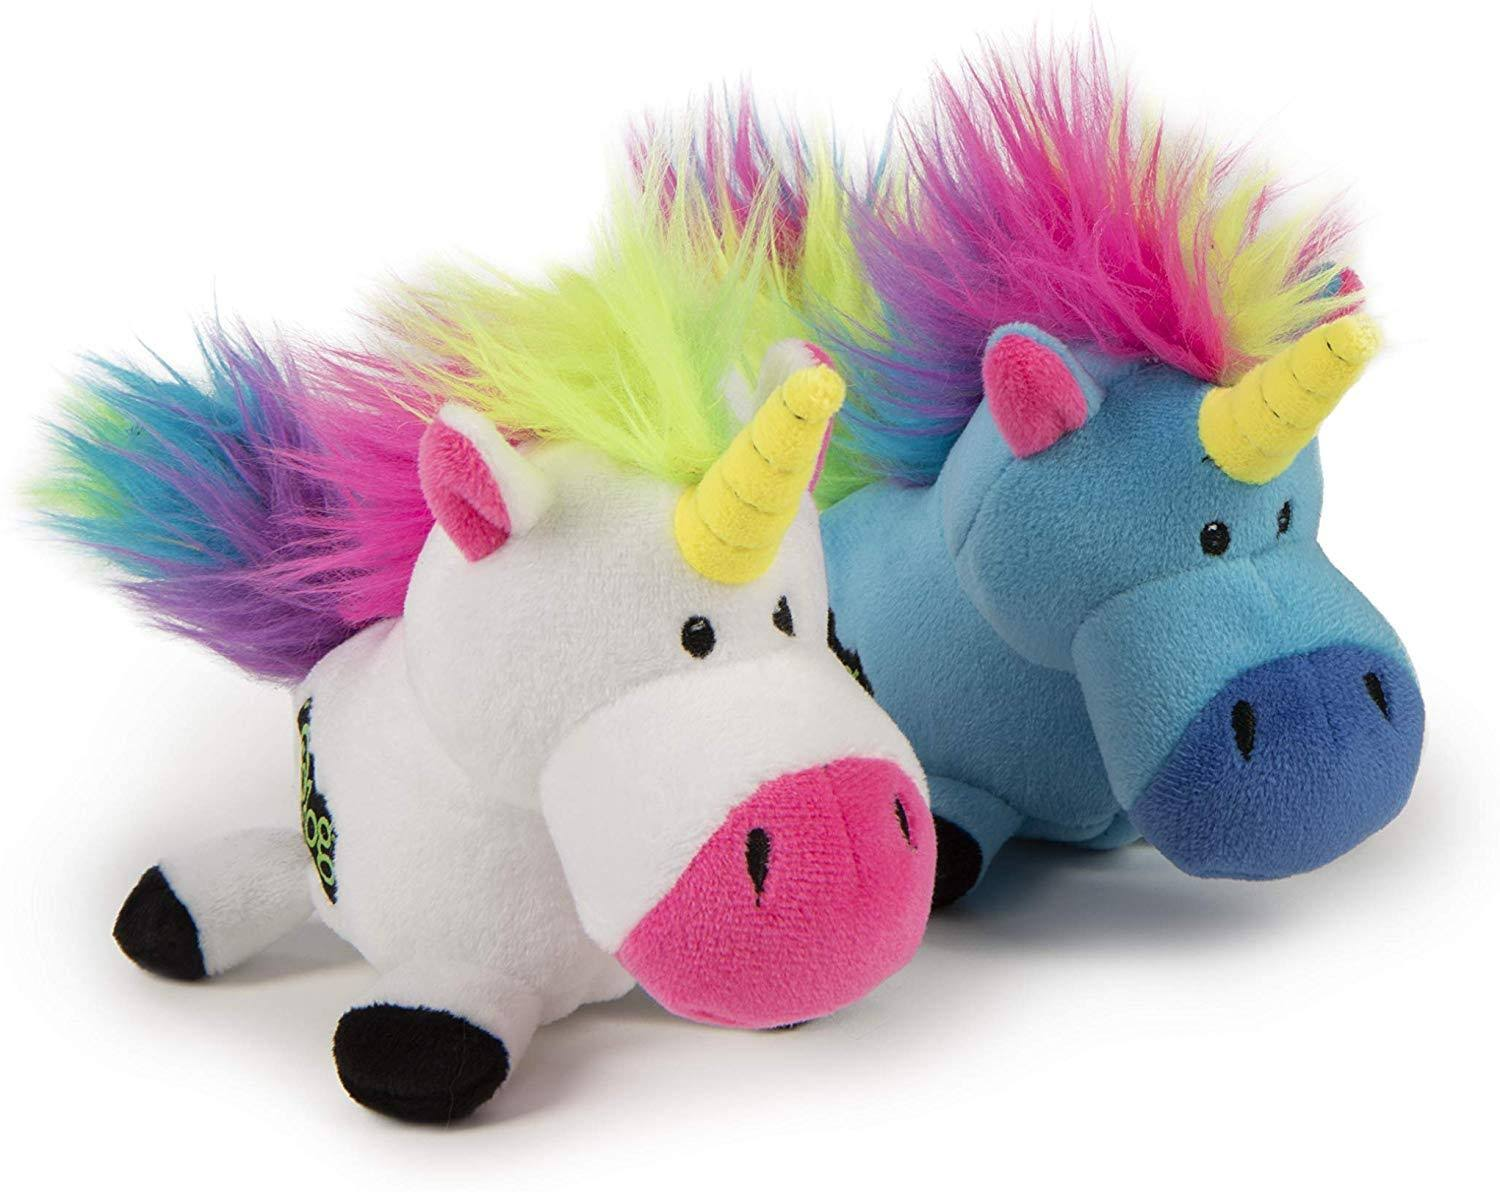 Godog Plush Unicorn Dog Toy, Blue Large